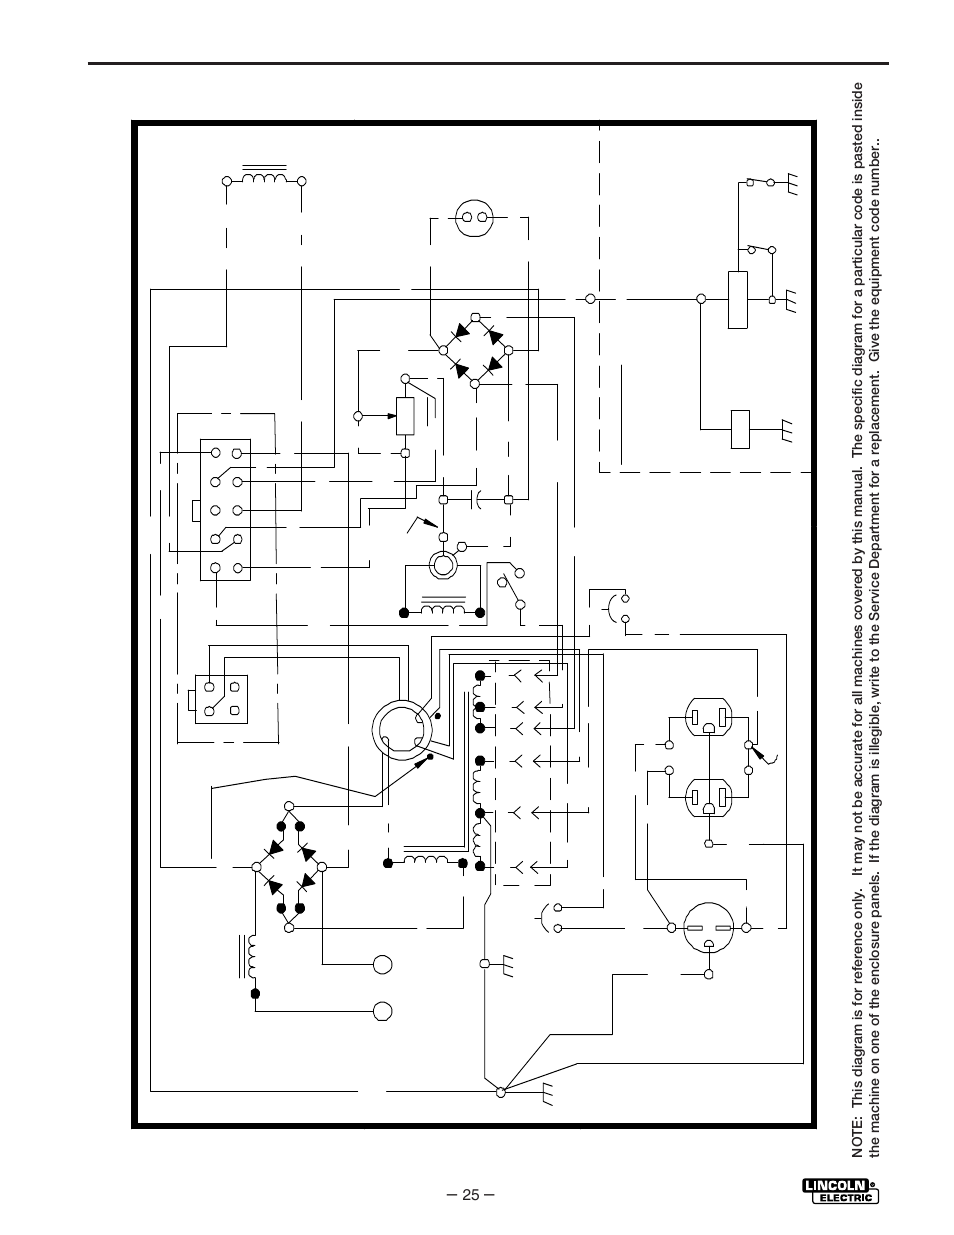 Weldanpower 200 Wiring Diagram And Schematics 2002 Porsche Boxster 125 Lincoln Electric Im530 User Manual Page 32 40